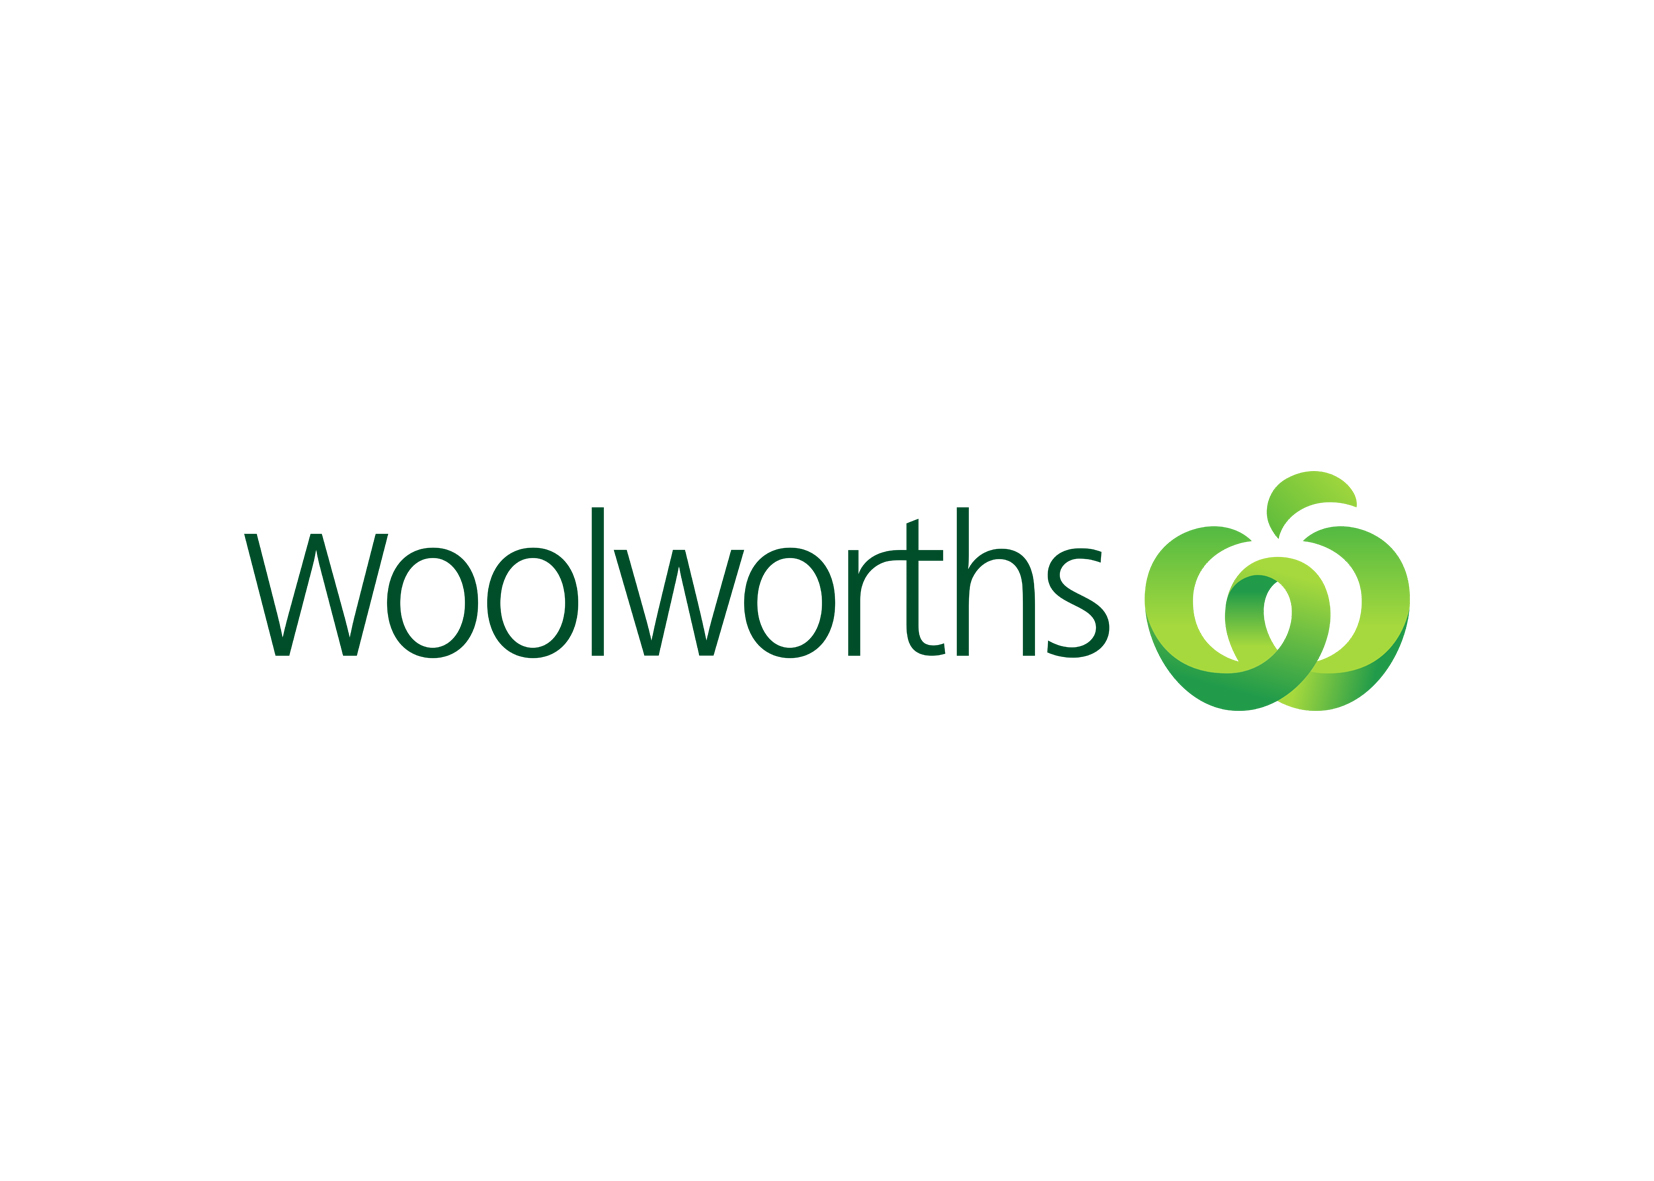 highway brands_0003_woolworths.jpg